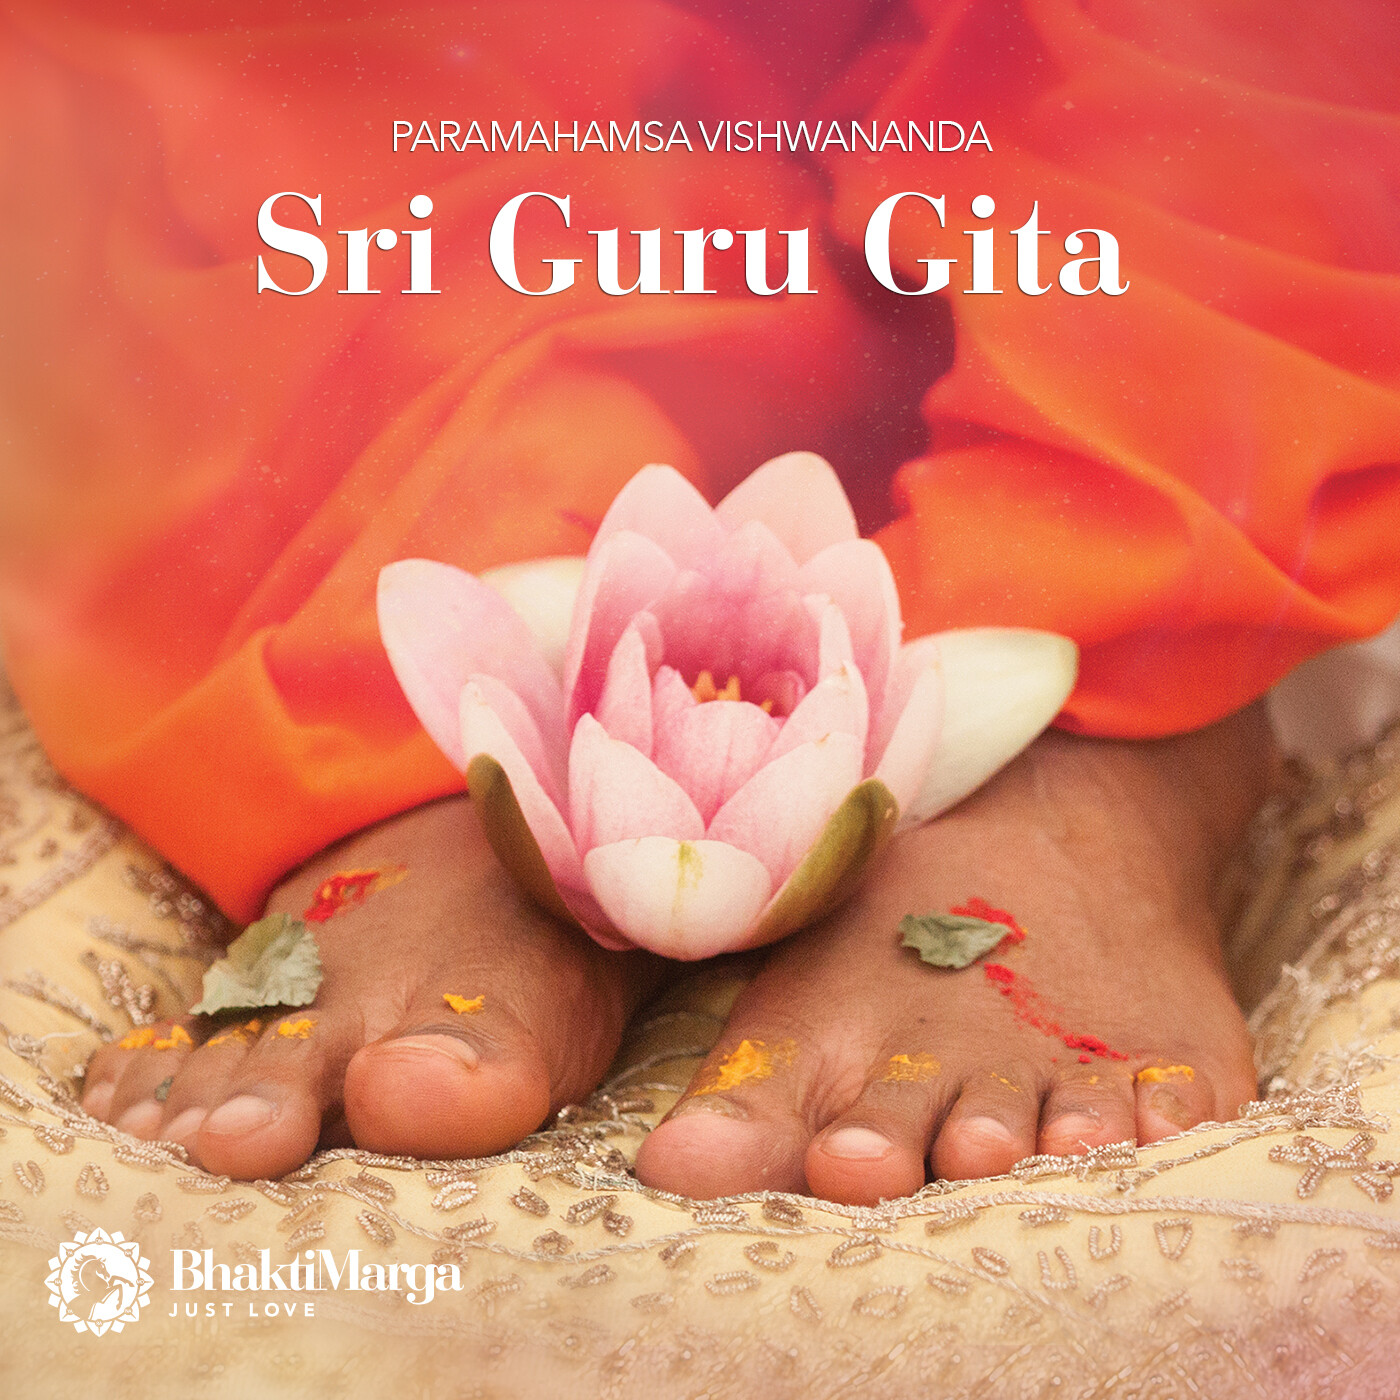 Sri Guru Gita - Audio Book - Sri Swami Vishwananda